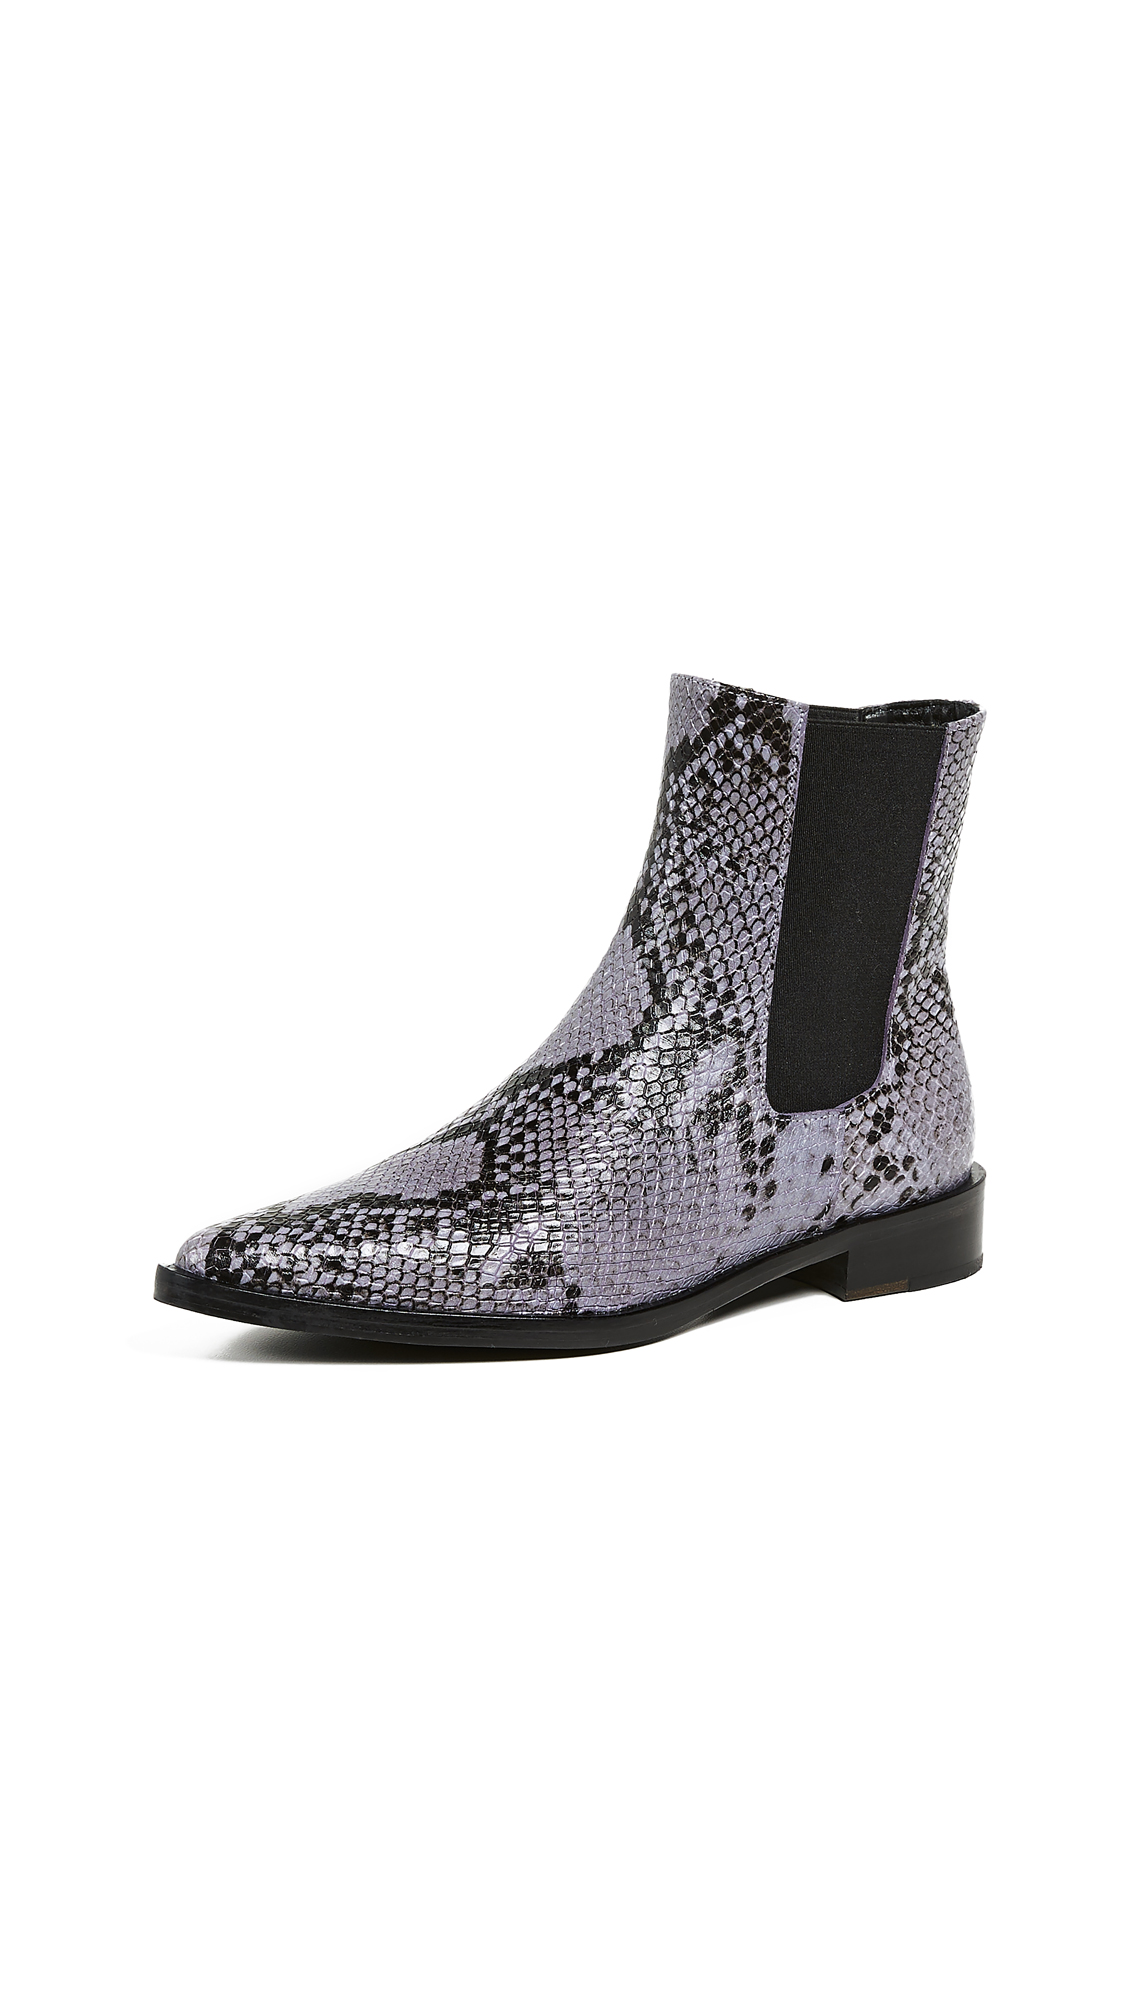 Freda Salvador Joan Pointed Toe Chelsea Boots - Lilac